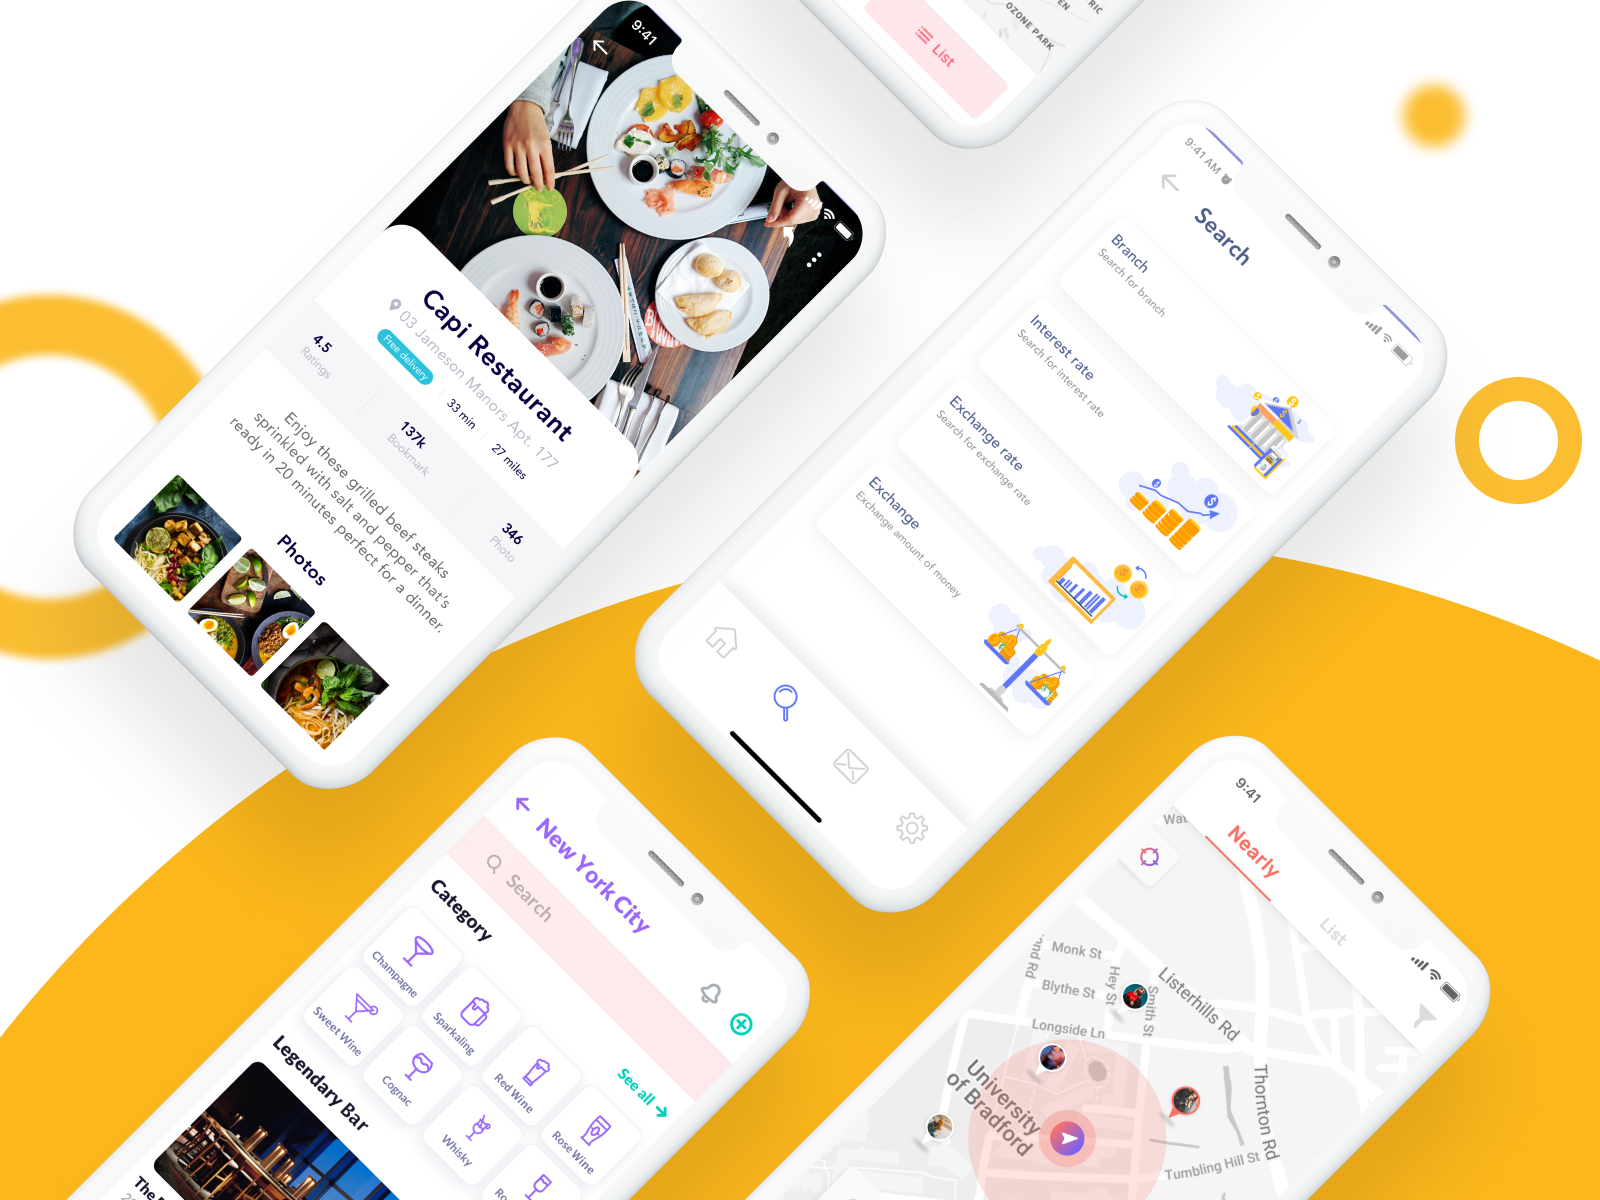 MOO - 4 App Design Categories In 1 UI Kit by Capi Creative for ...